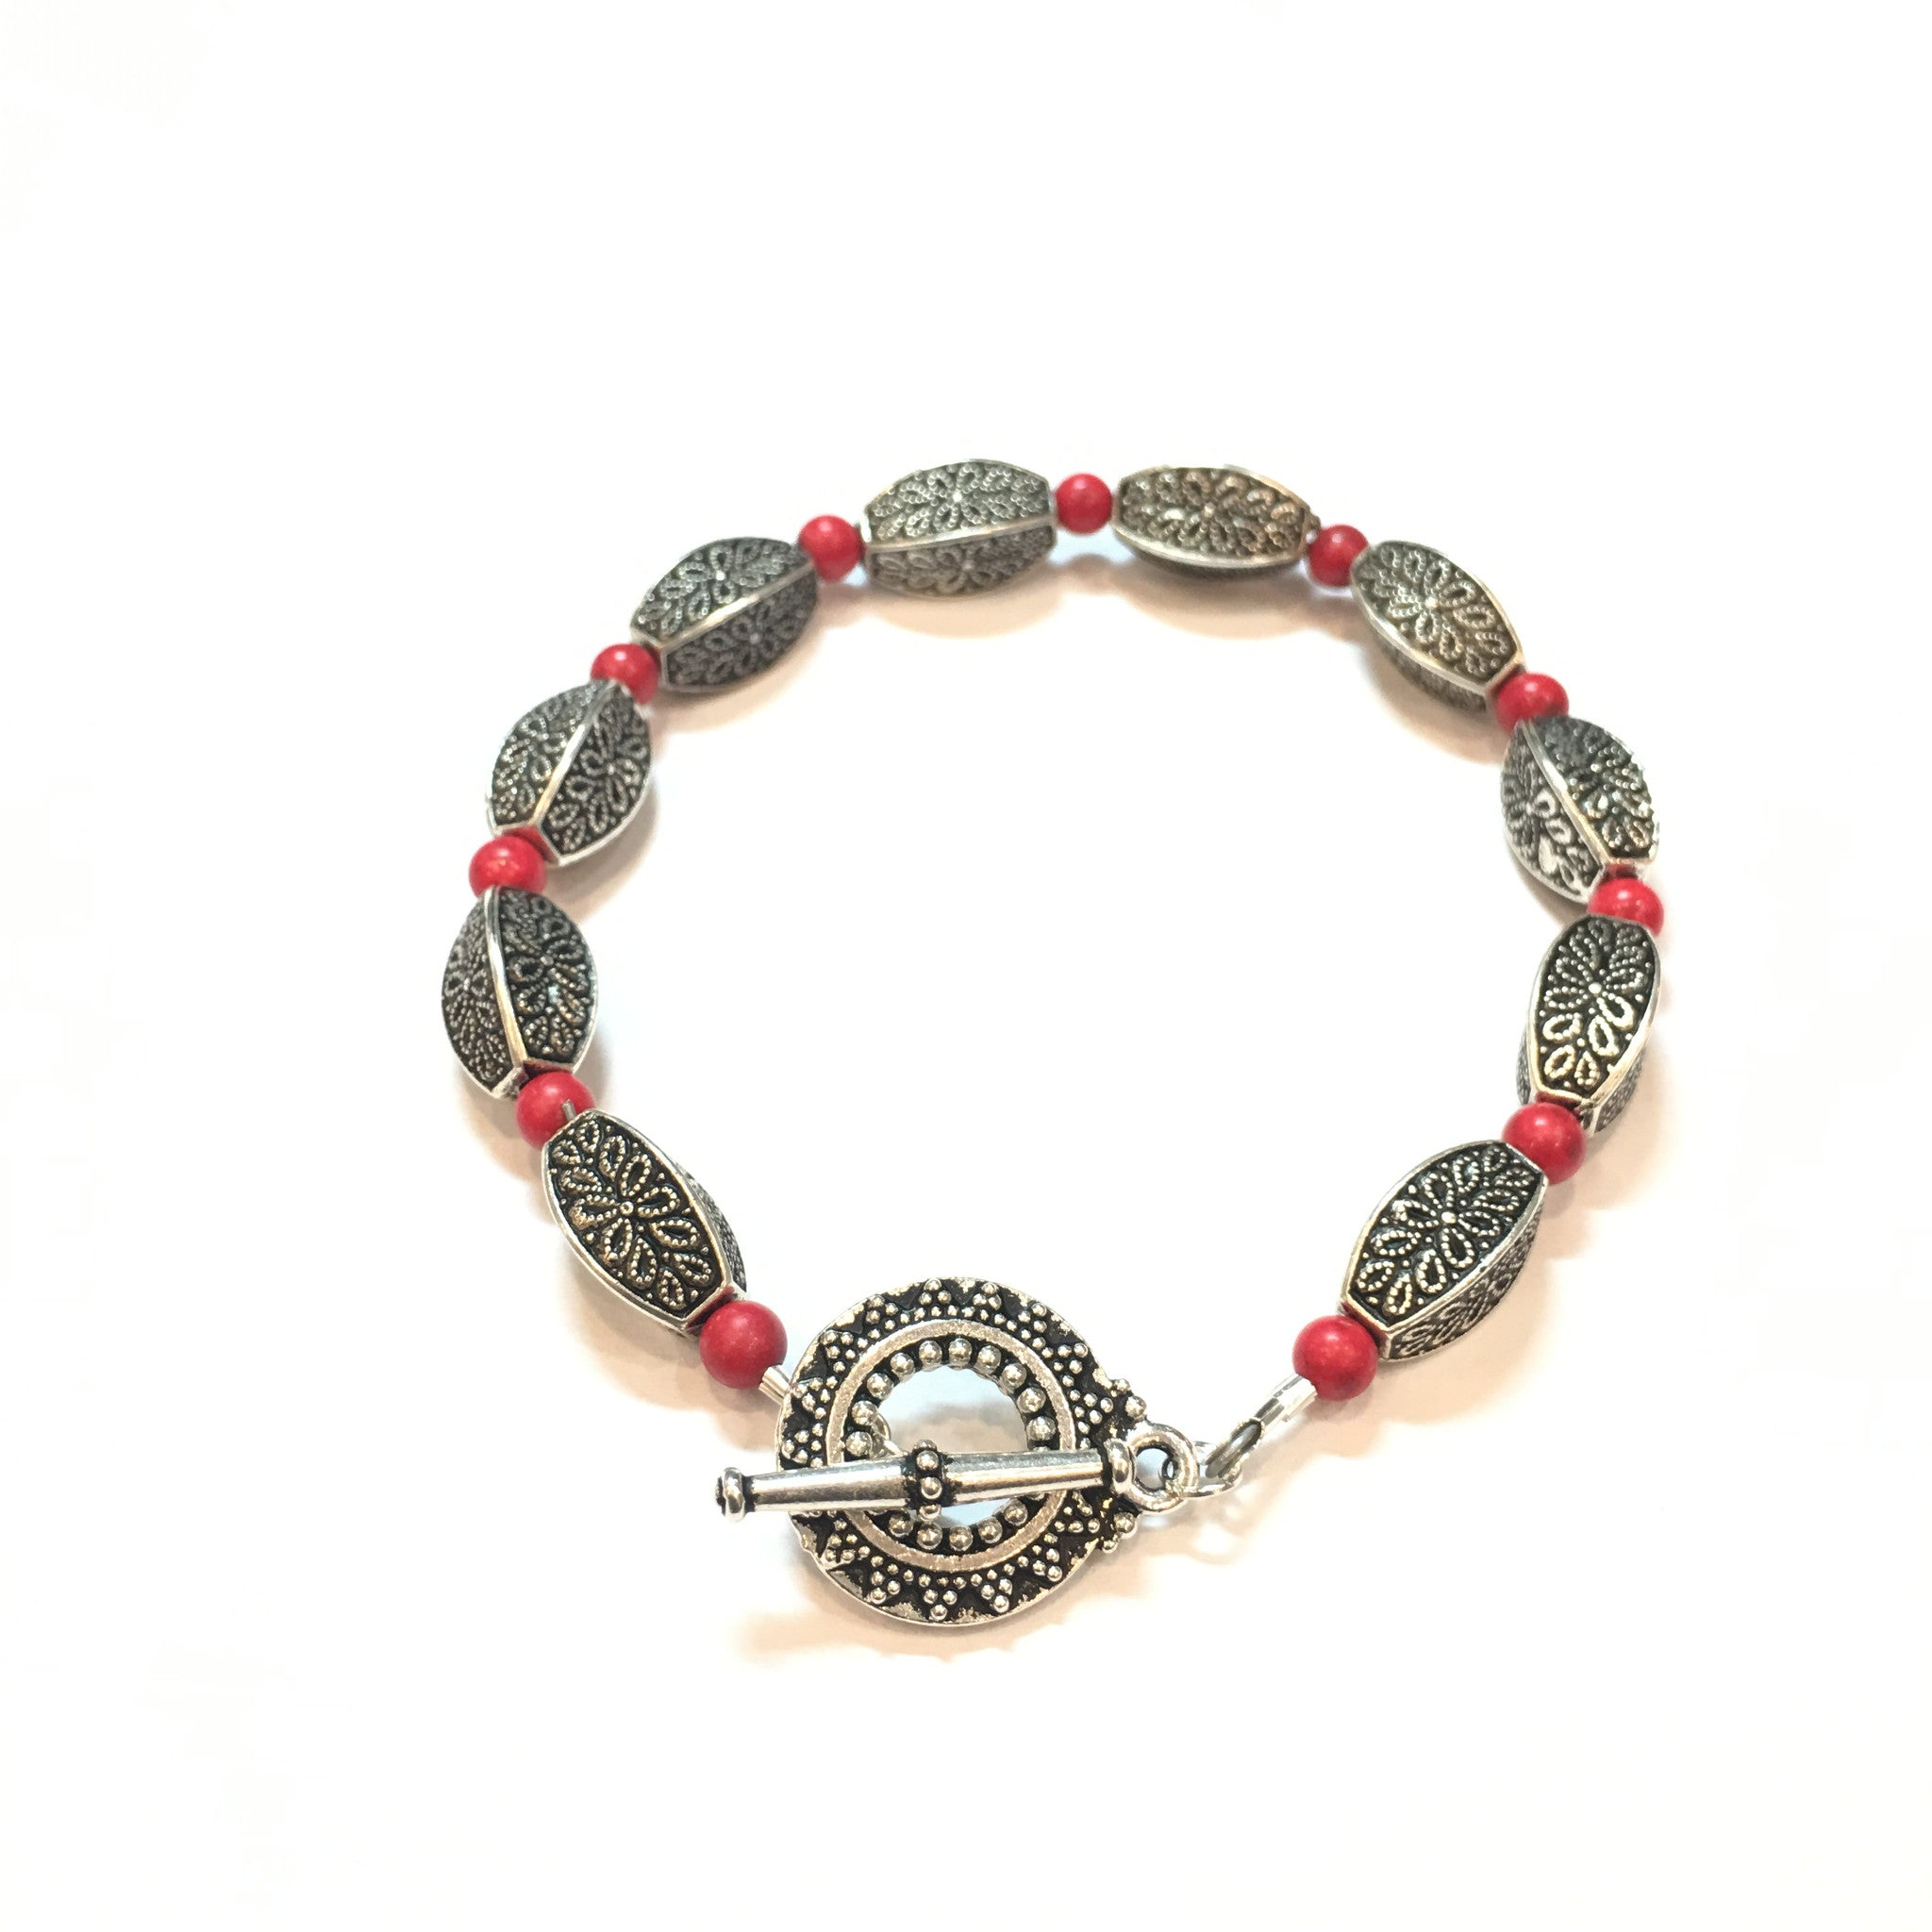 Coral and Antique Silver Bracelet - Real Chic Boutique  - 3